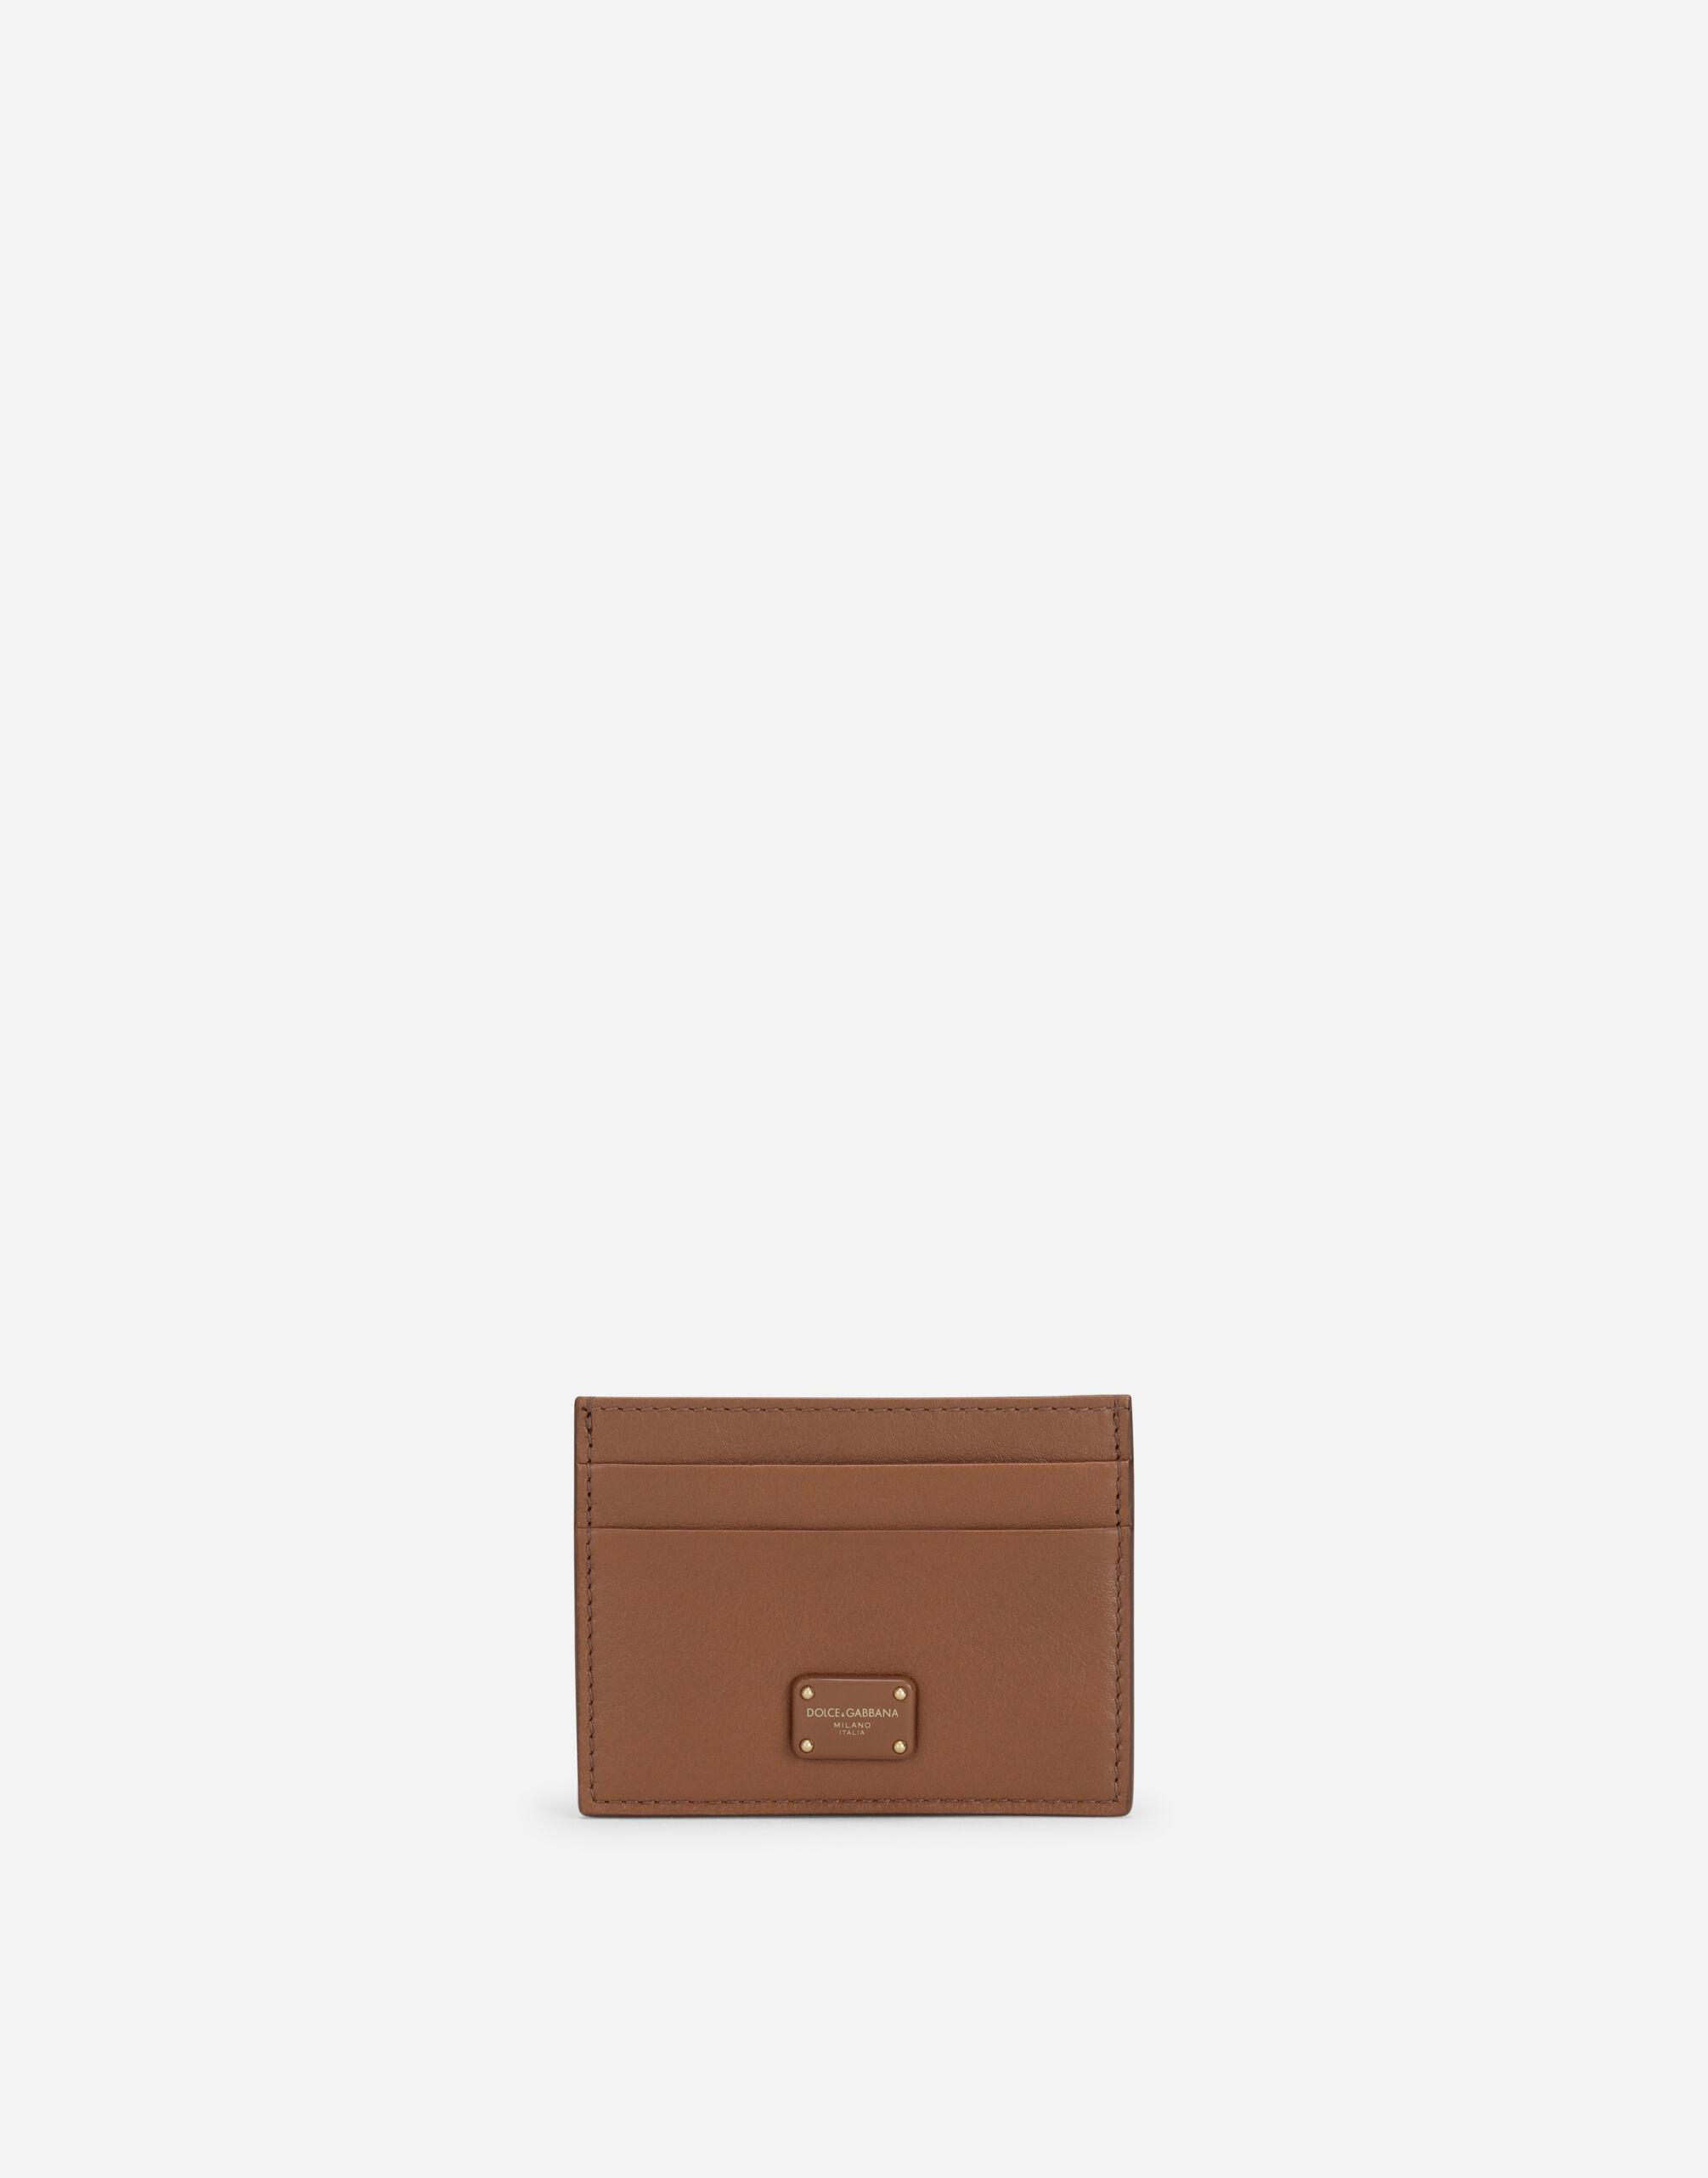 Calfskin card holder with branded plate